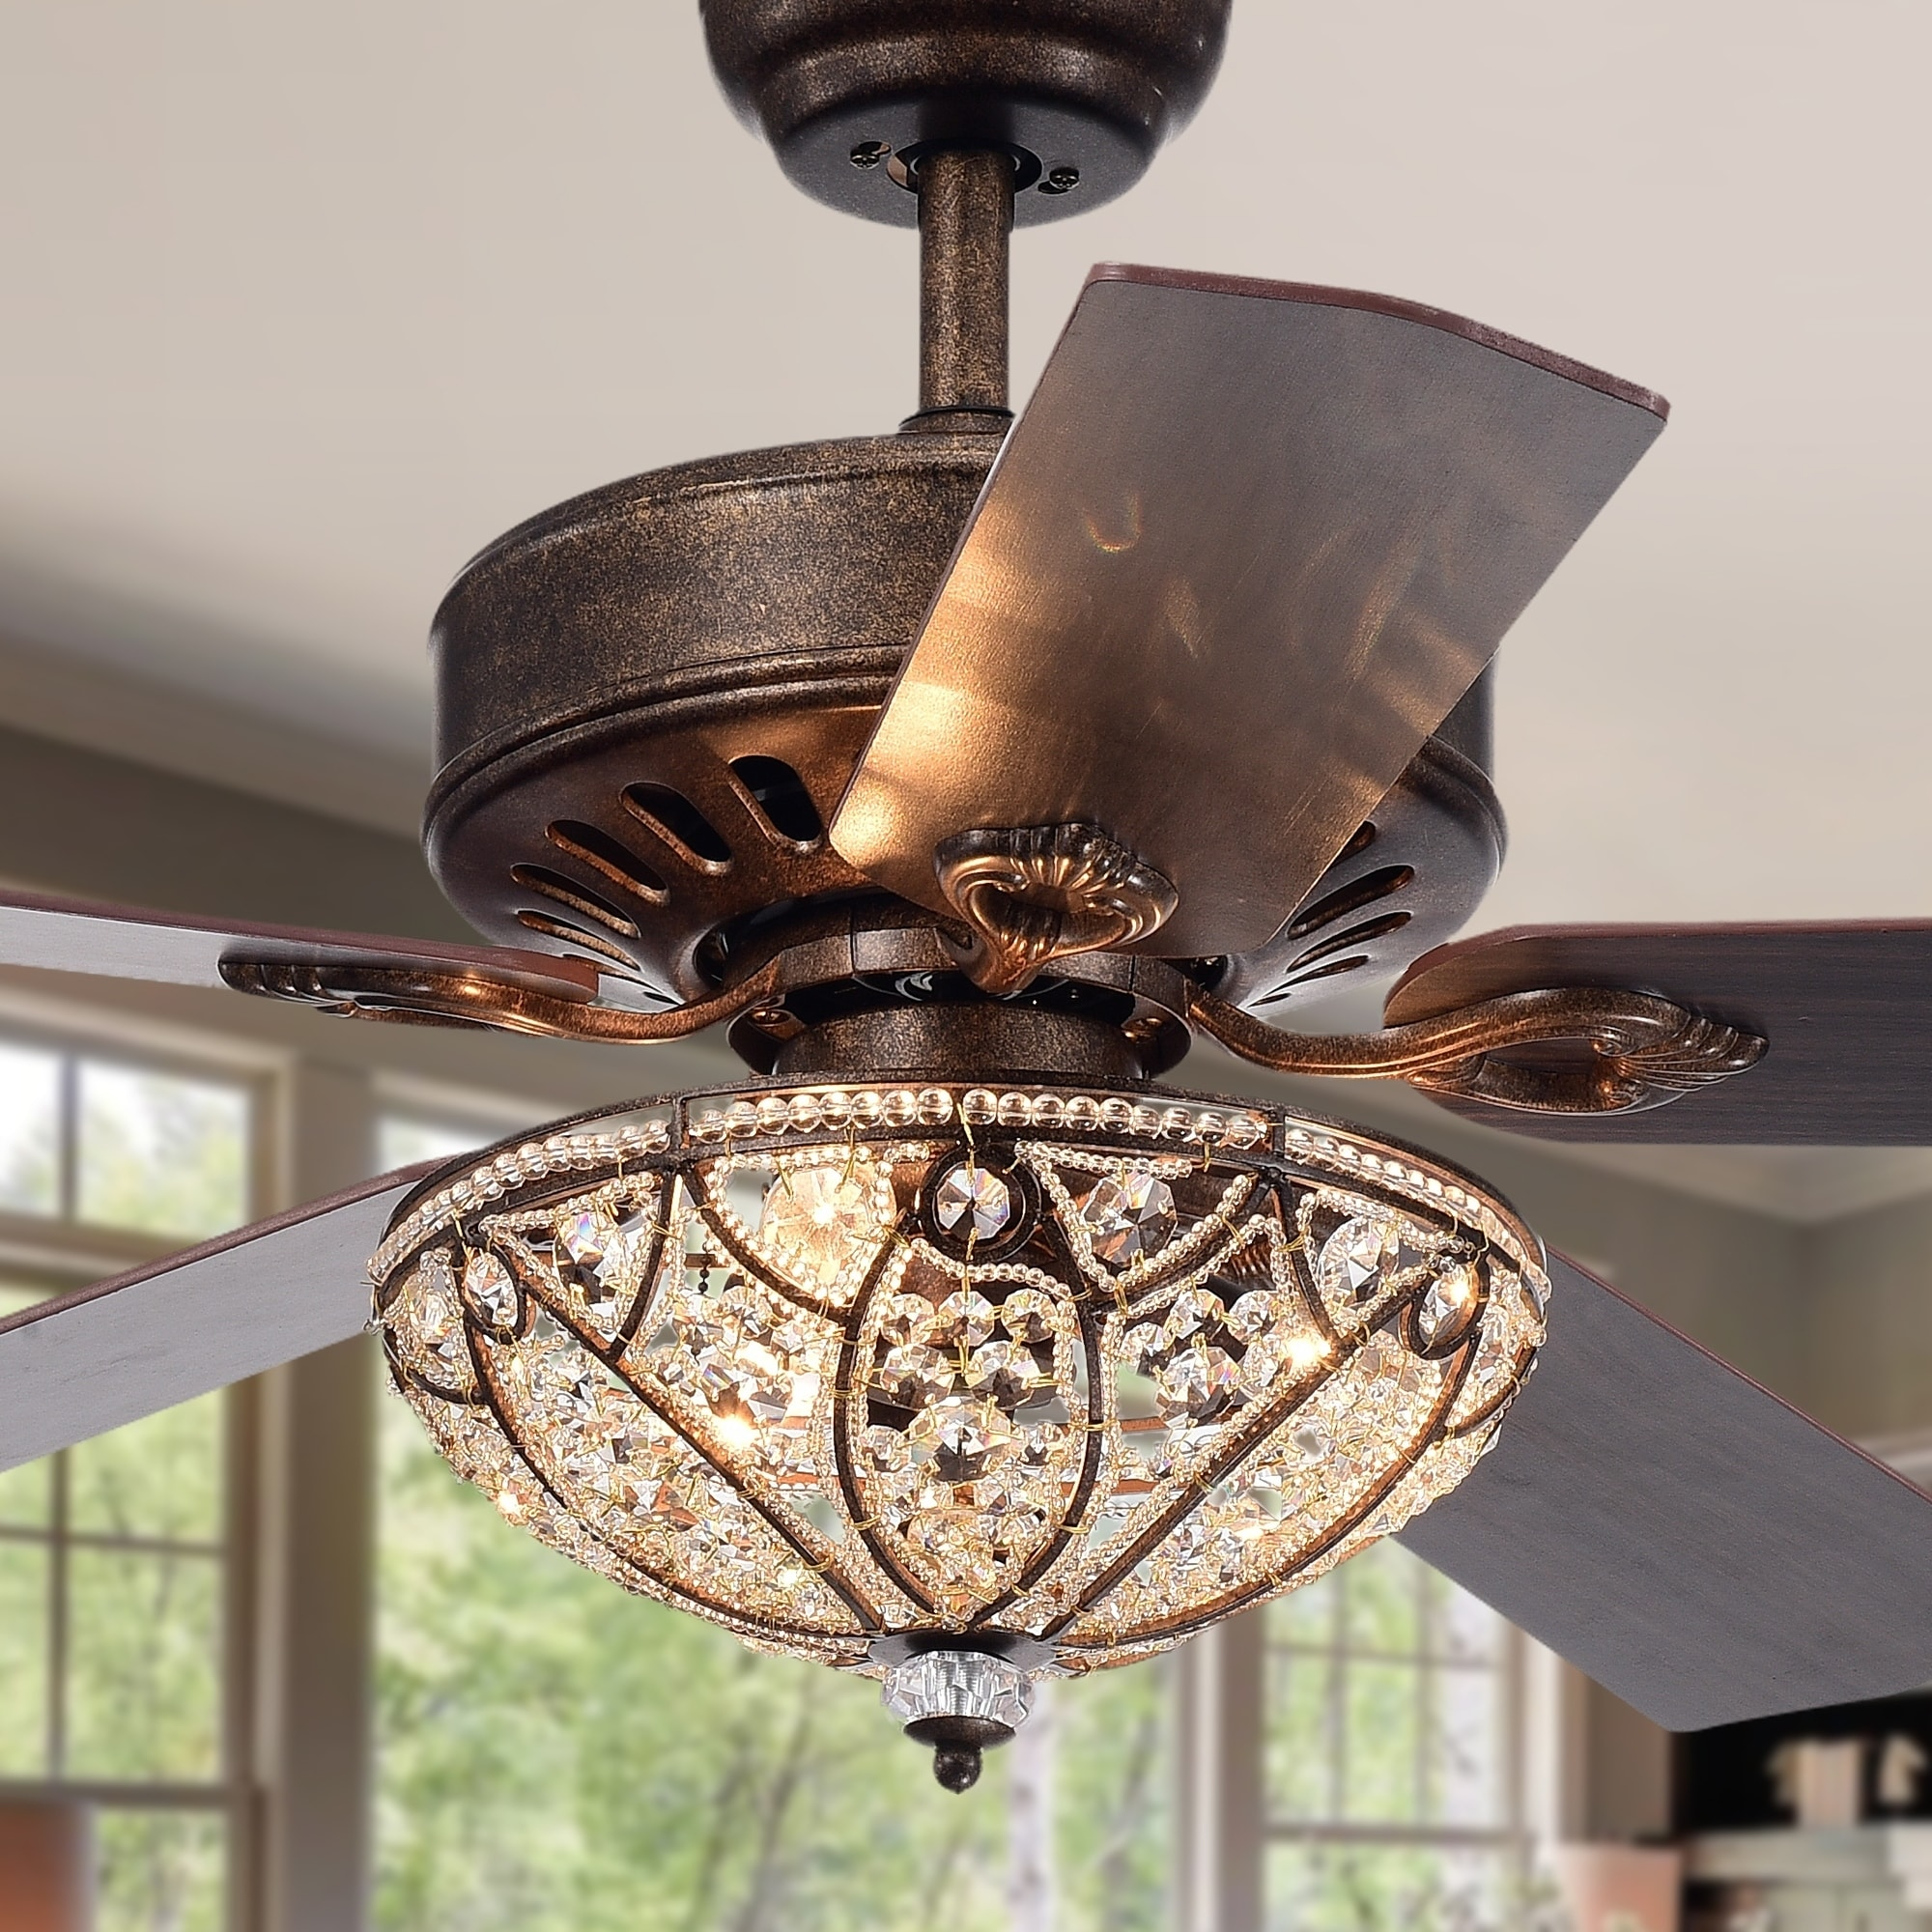 Gliska 52 Inch 5 Blade Rustic Bronze Lighted Ceiling Fans With Crystal Bowl Shade Remote Controlled On Free Shipping Today